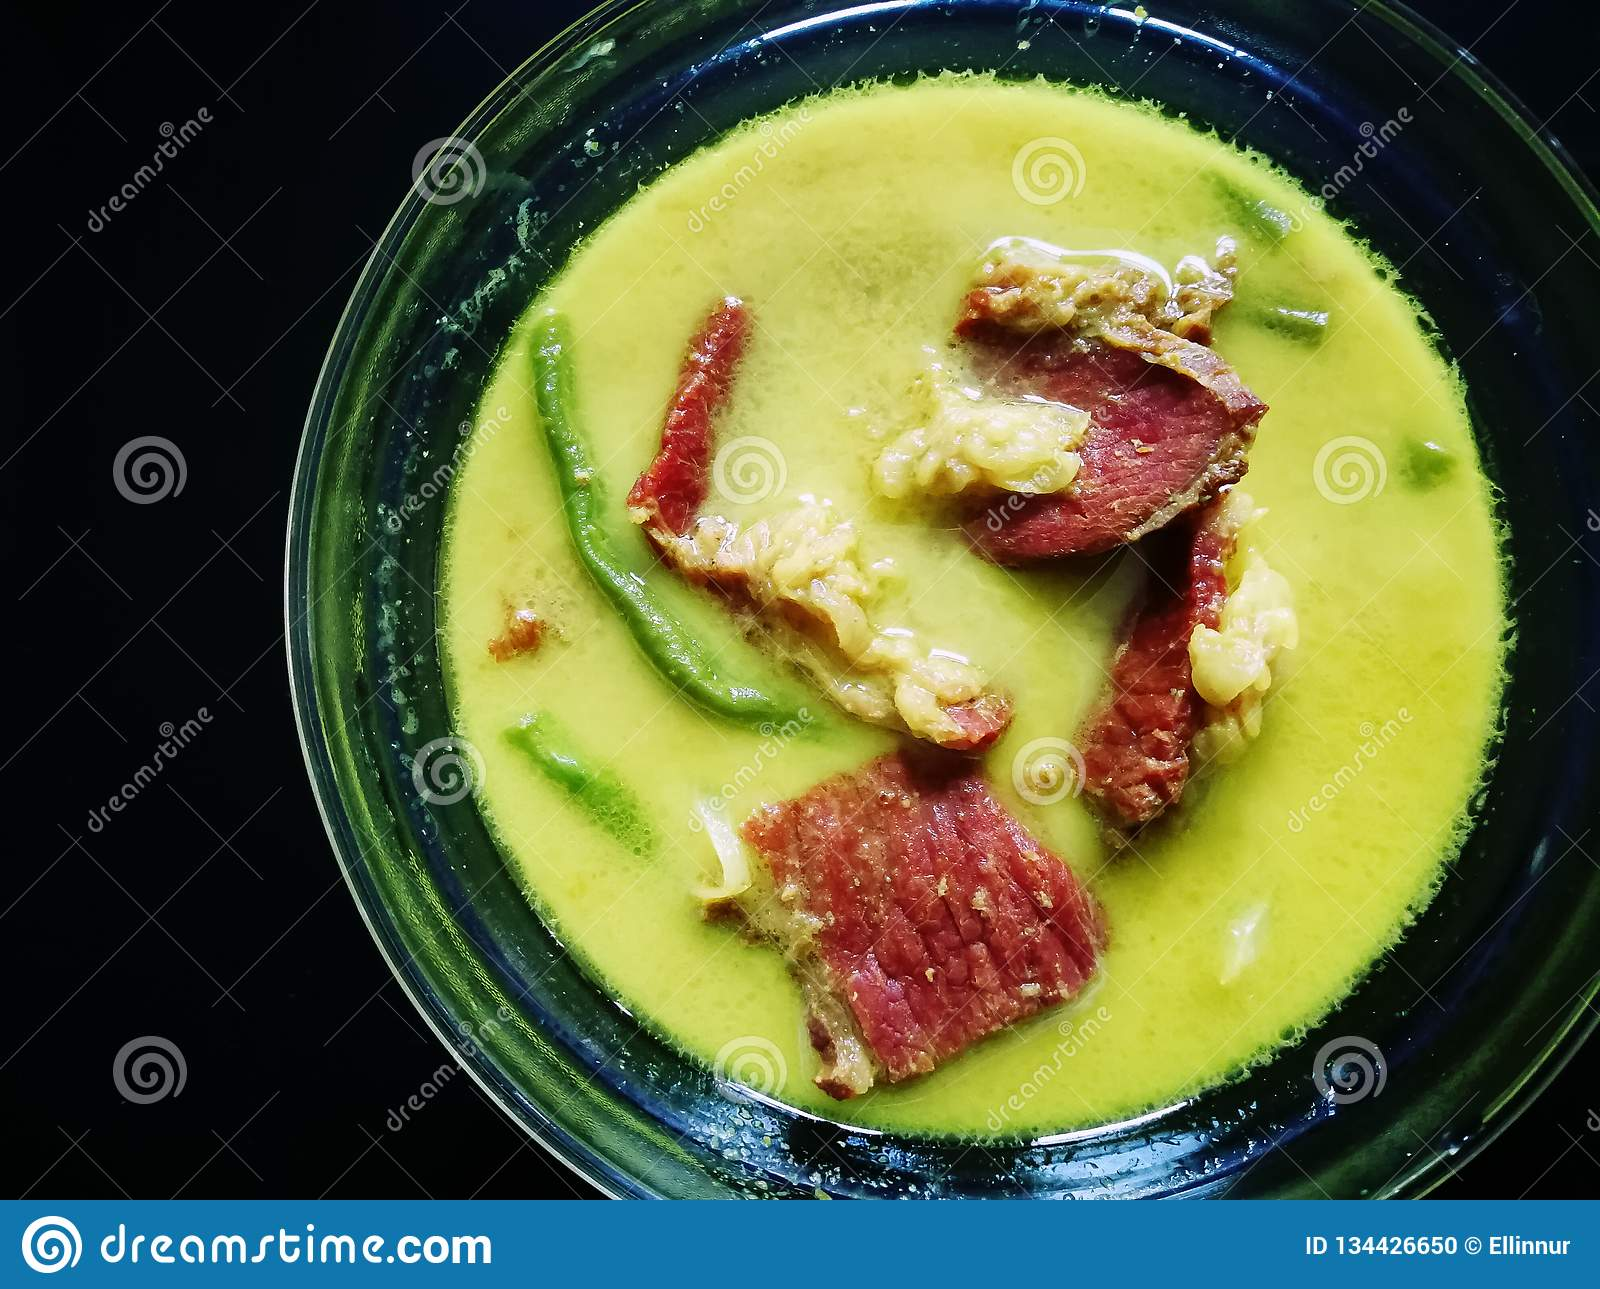 Background Masak Masak Lemak Daging Salai Smoked Beef Cooked In Coconut Milk Stock